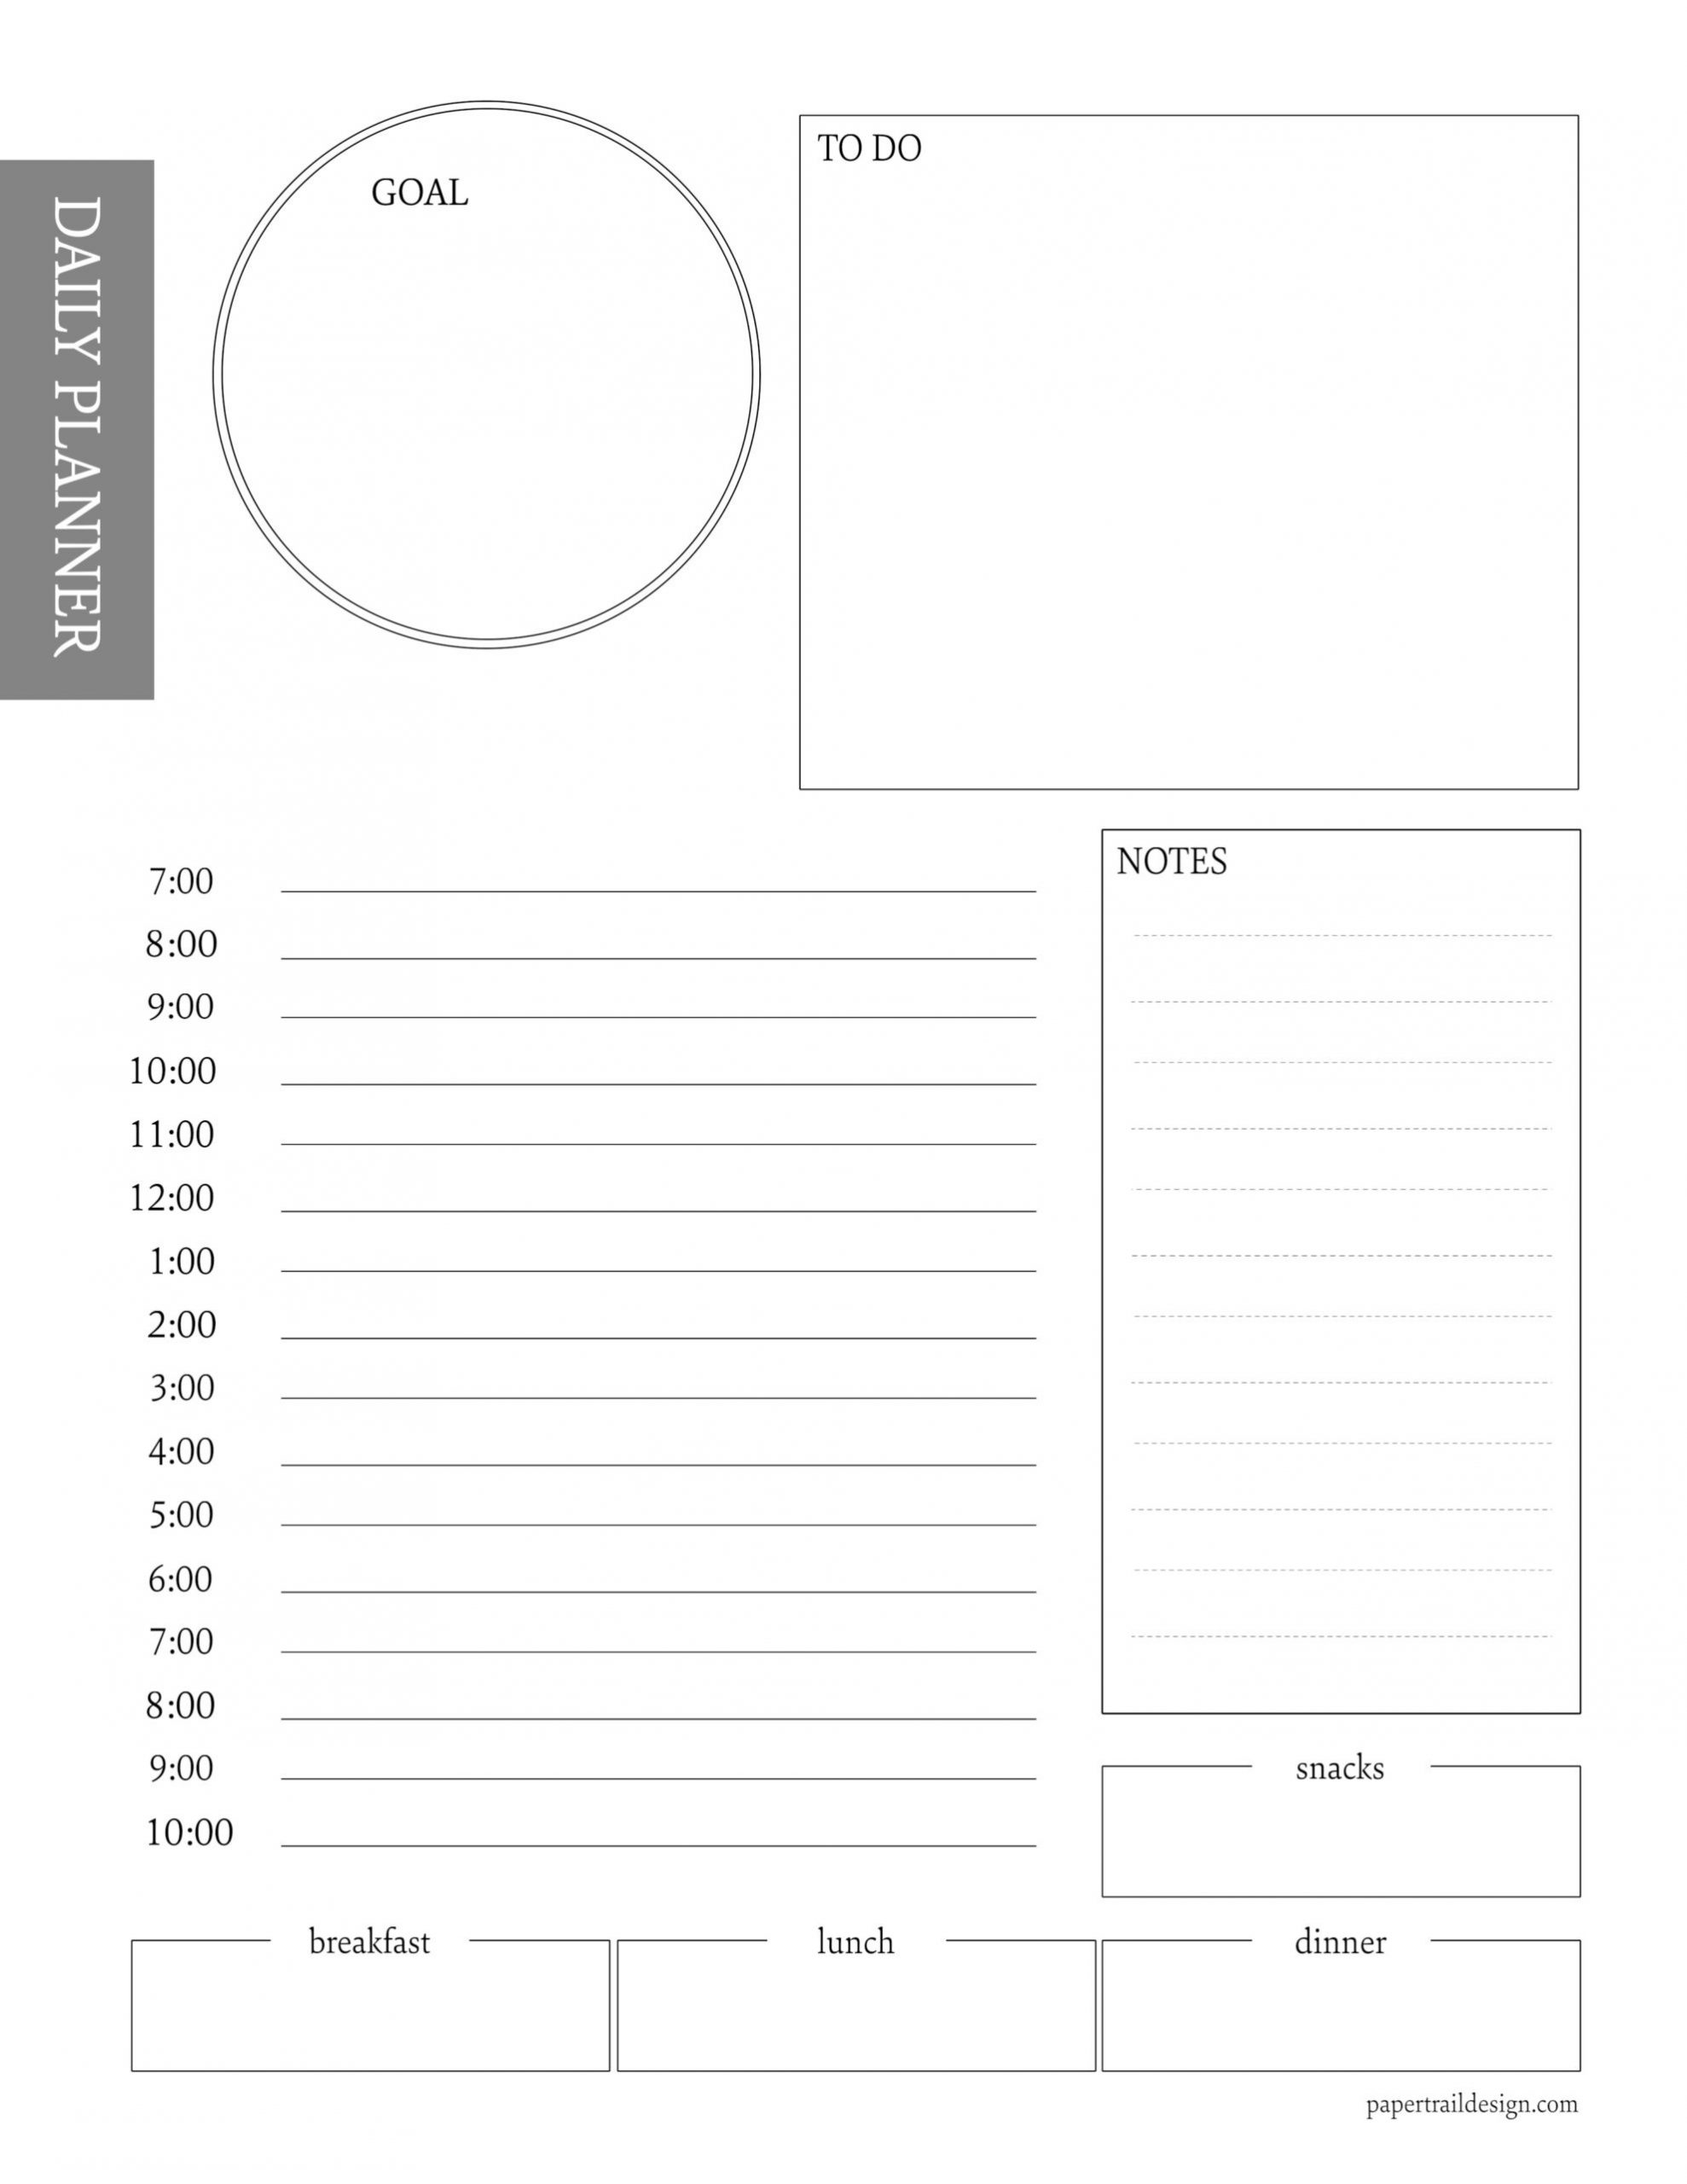 Free Daily Planner Printable Template | Paper Trail Design  Desktop Scheduler Free Download To Print Out